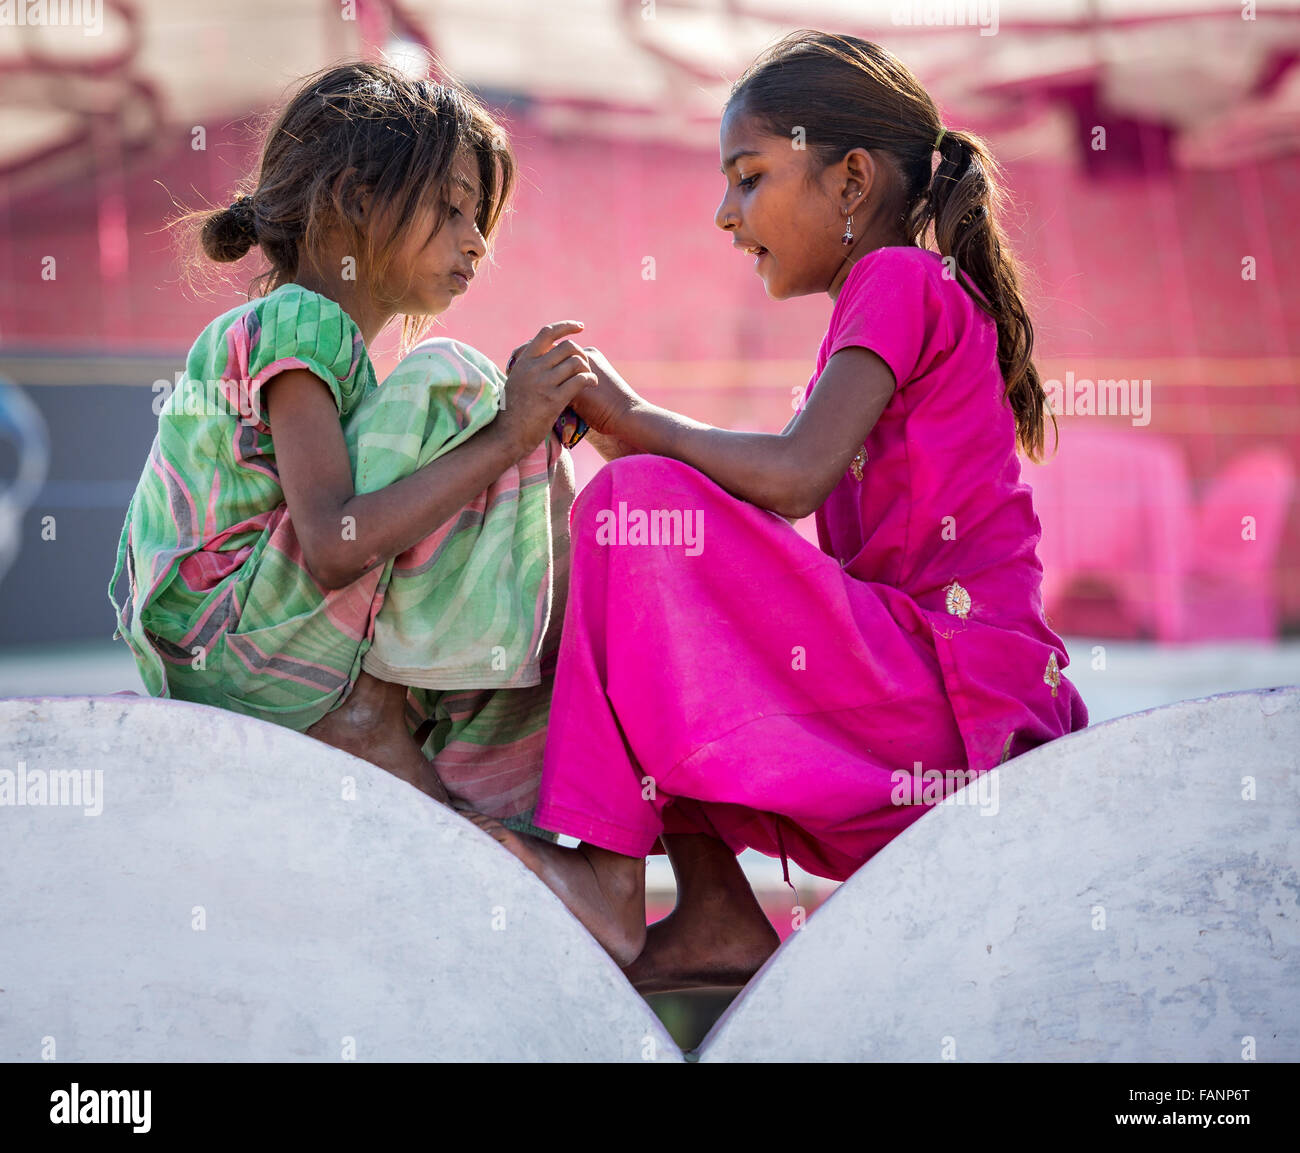 Two poor girls sitting on a wall, portrait, Pushkar, Rajasthan, India Stock Photo